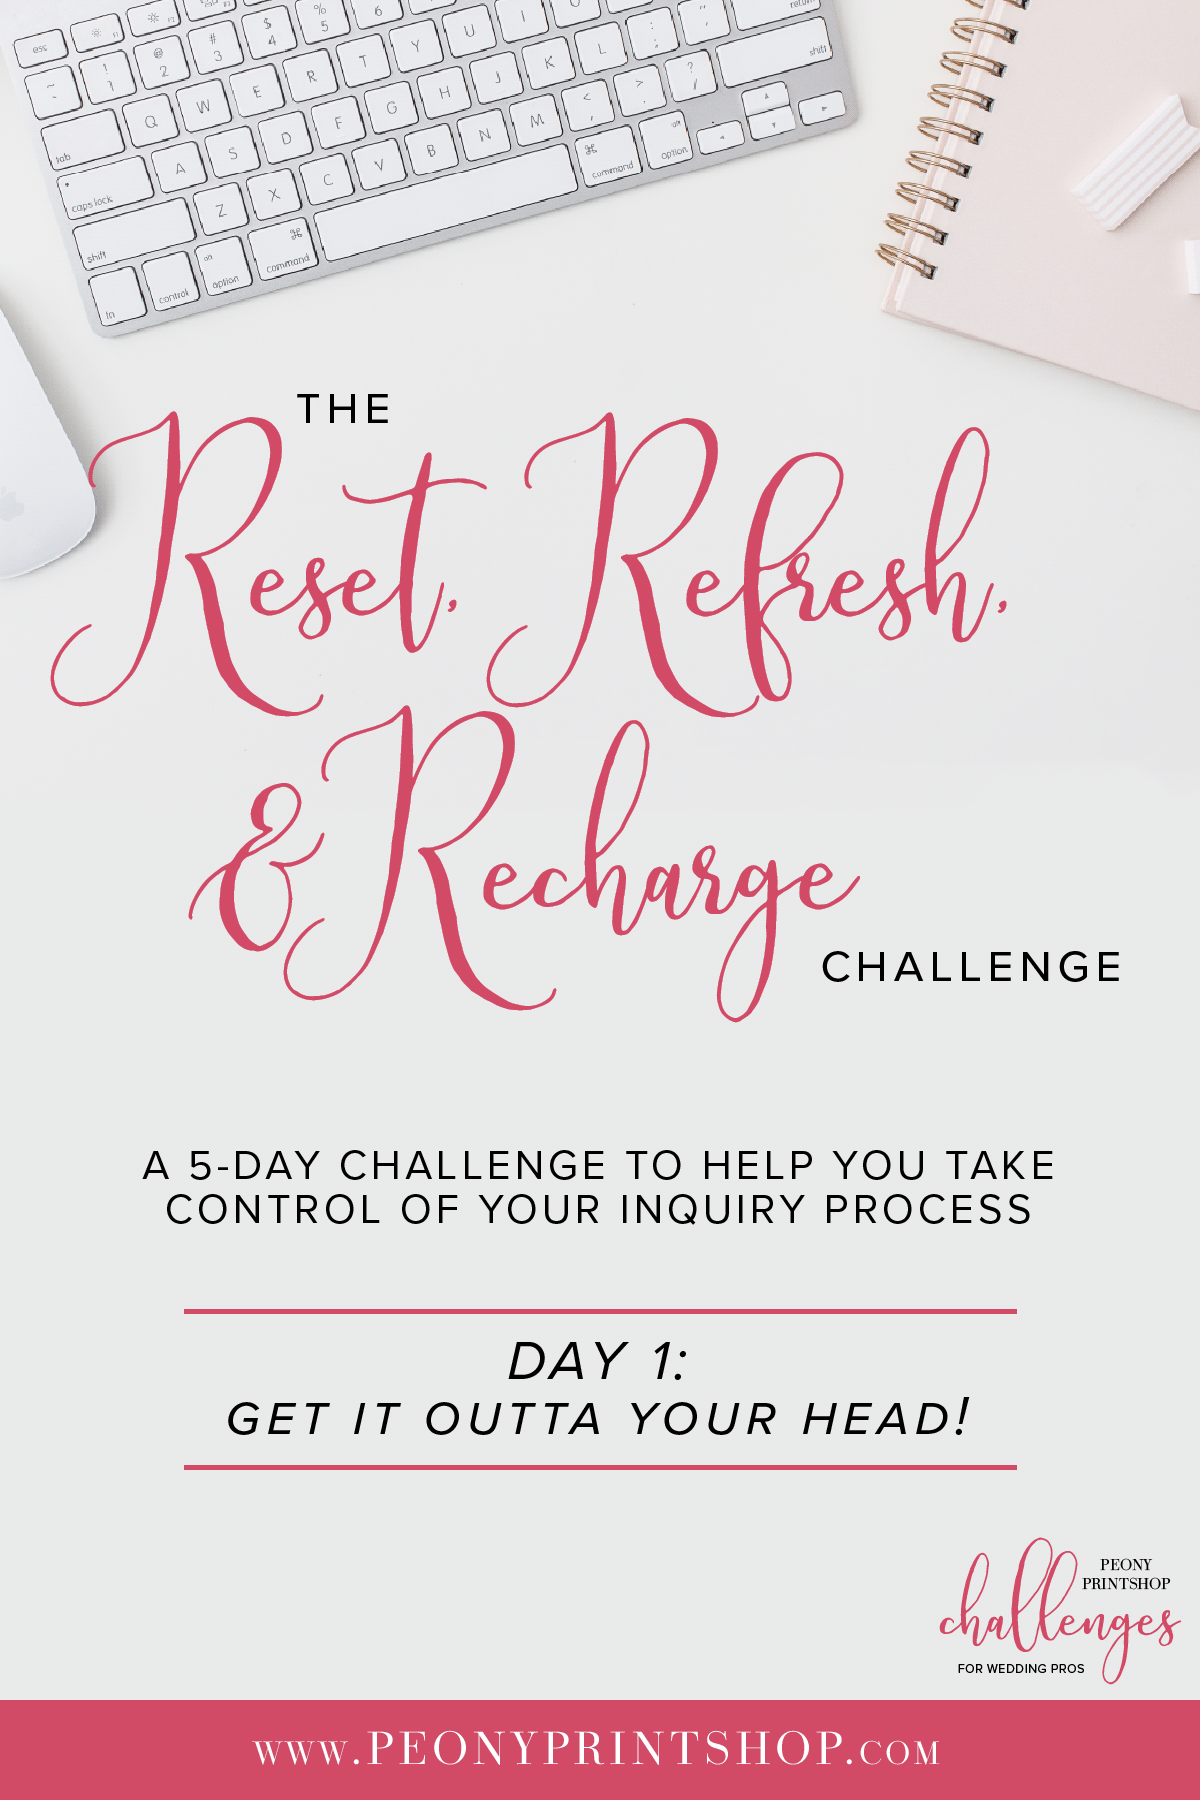 Reset, Refresh, & Recharge Challenge at PeonyPrinsthop.com   Day 1: Get It Outta Your Head